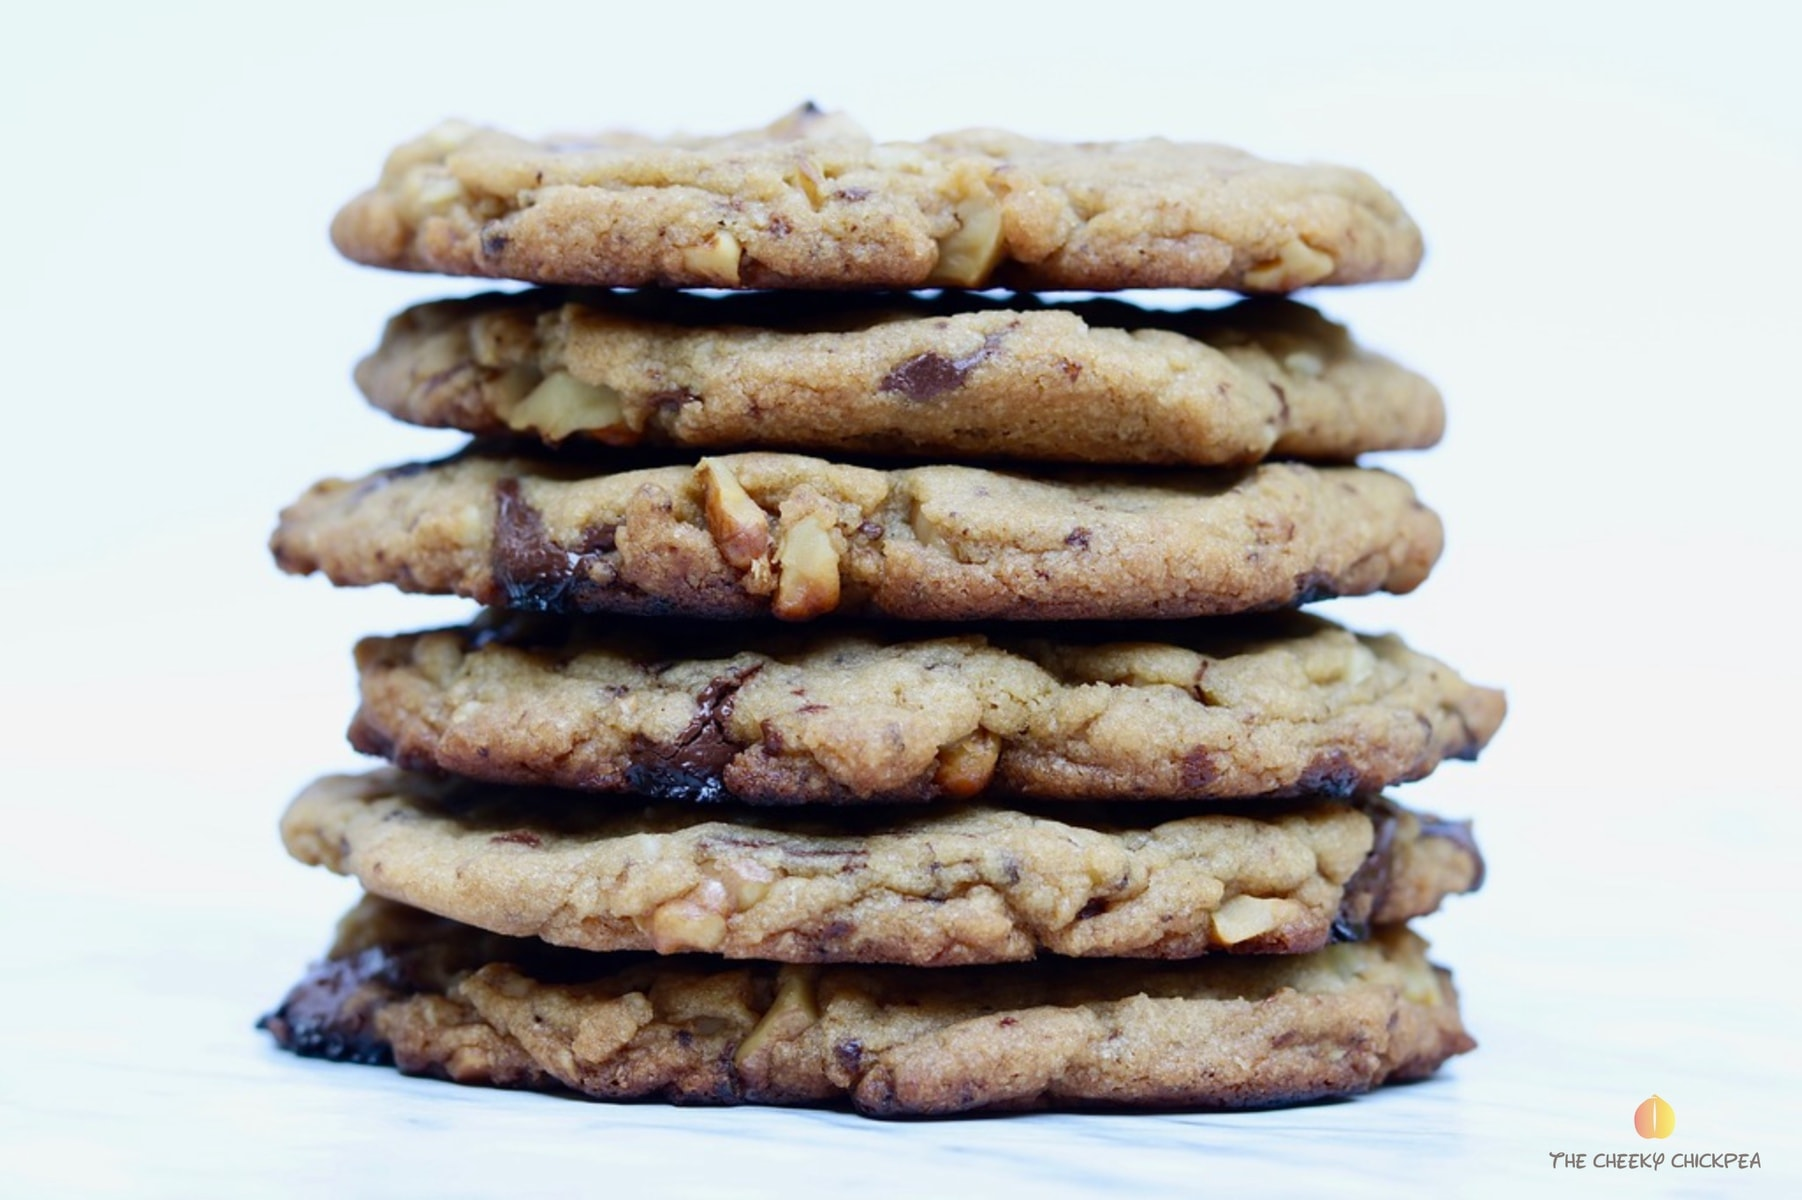 vegan chocolate chip cookies stacked on a marble countertop